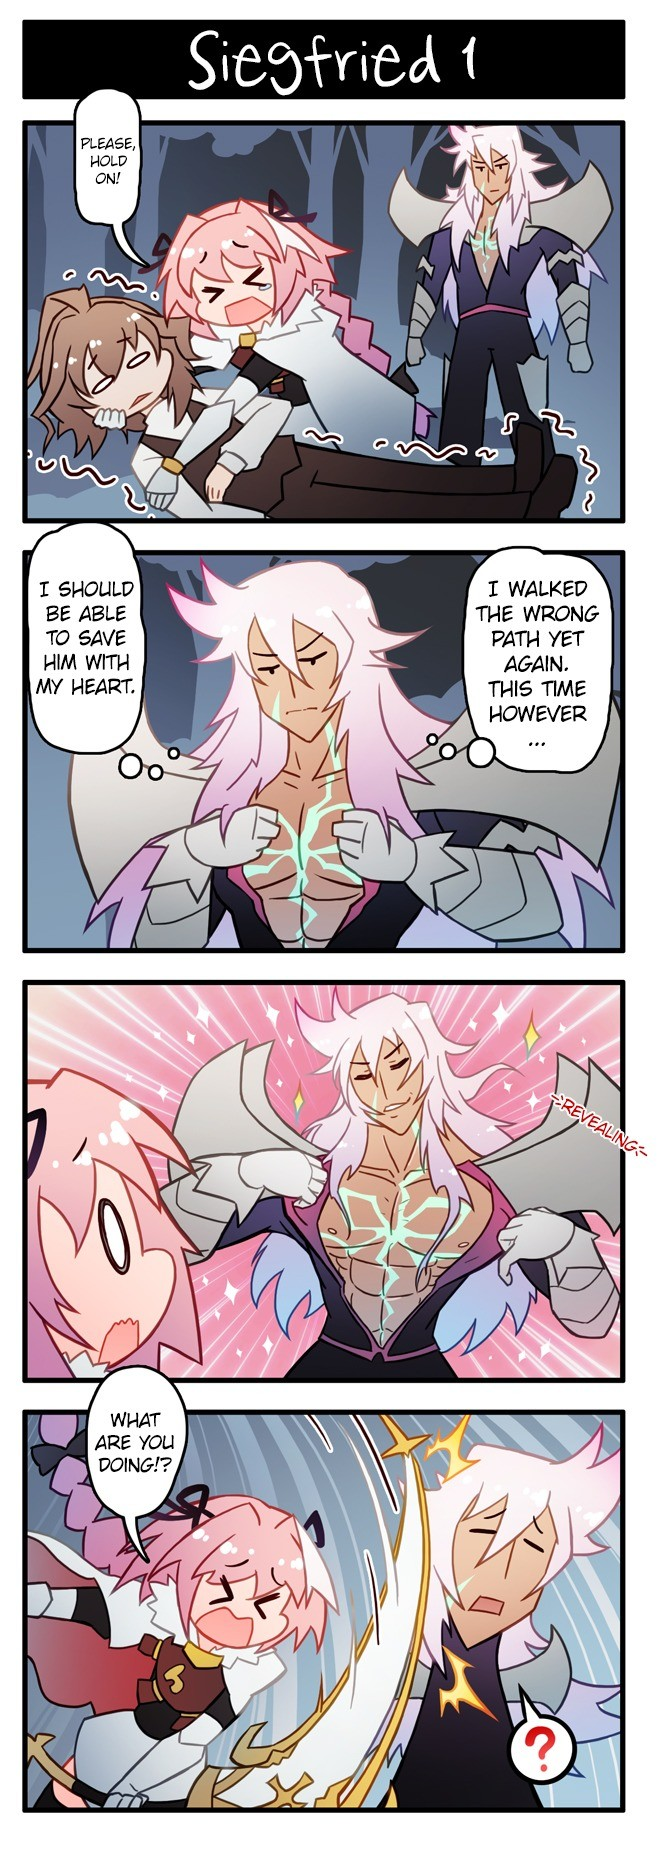 Siegfried and his deep dark fantasys. .. OI! only Astolfo can get his dick sucked by Sieg